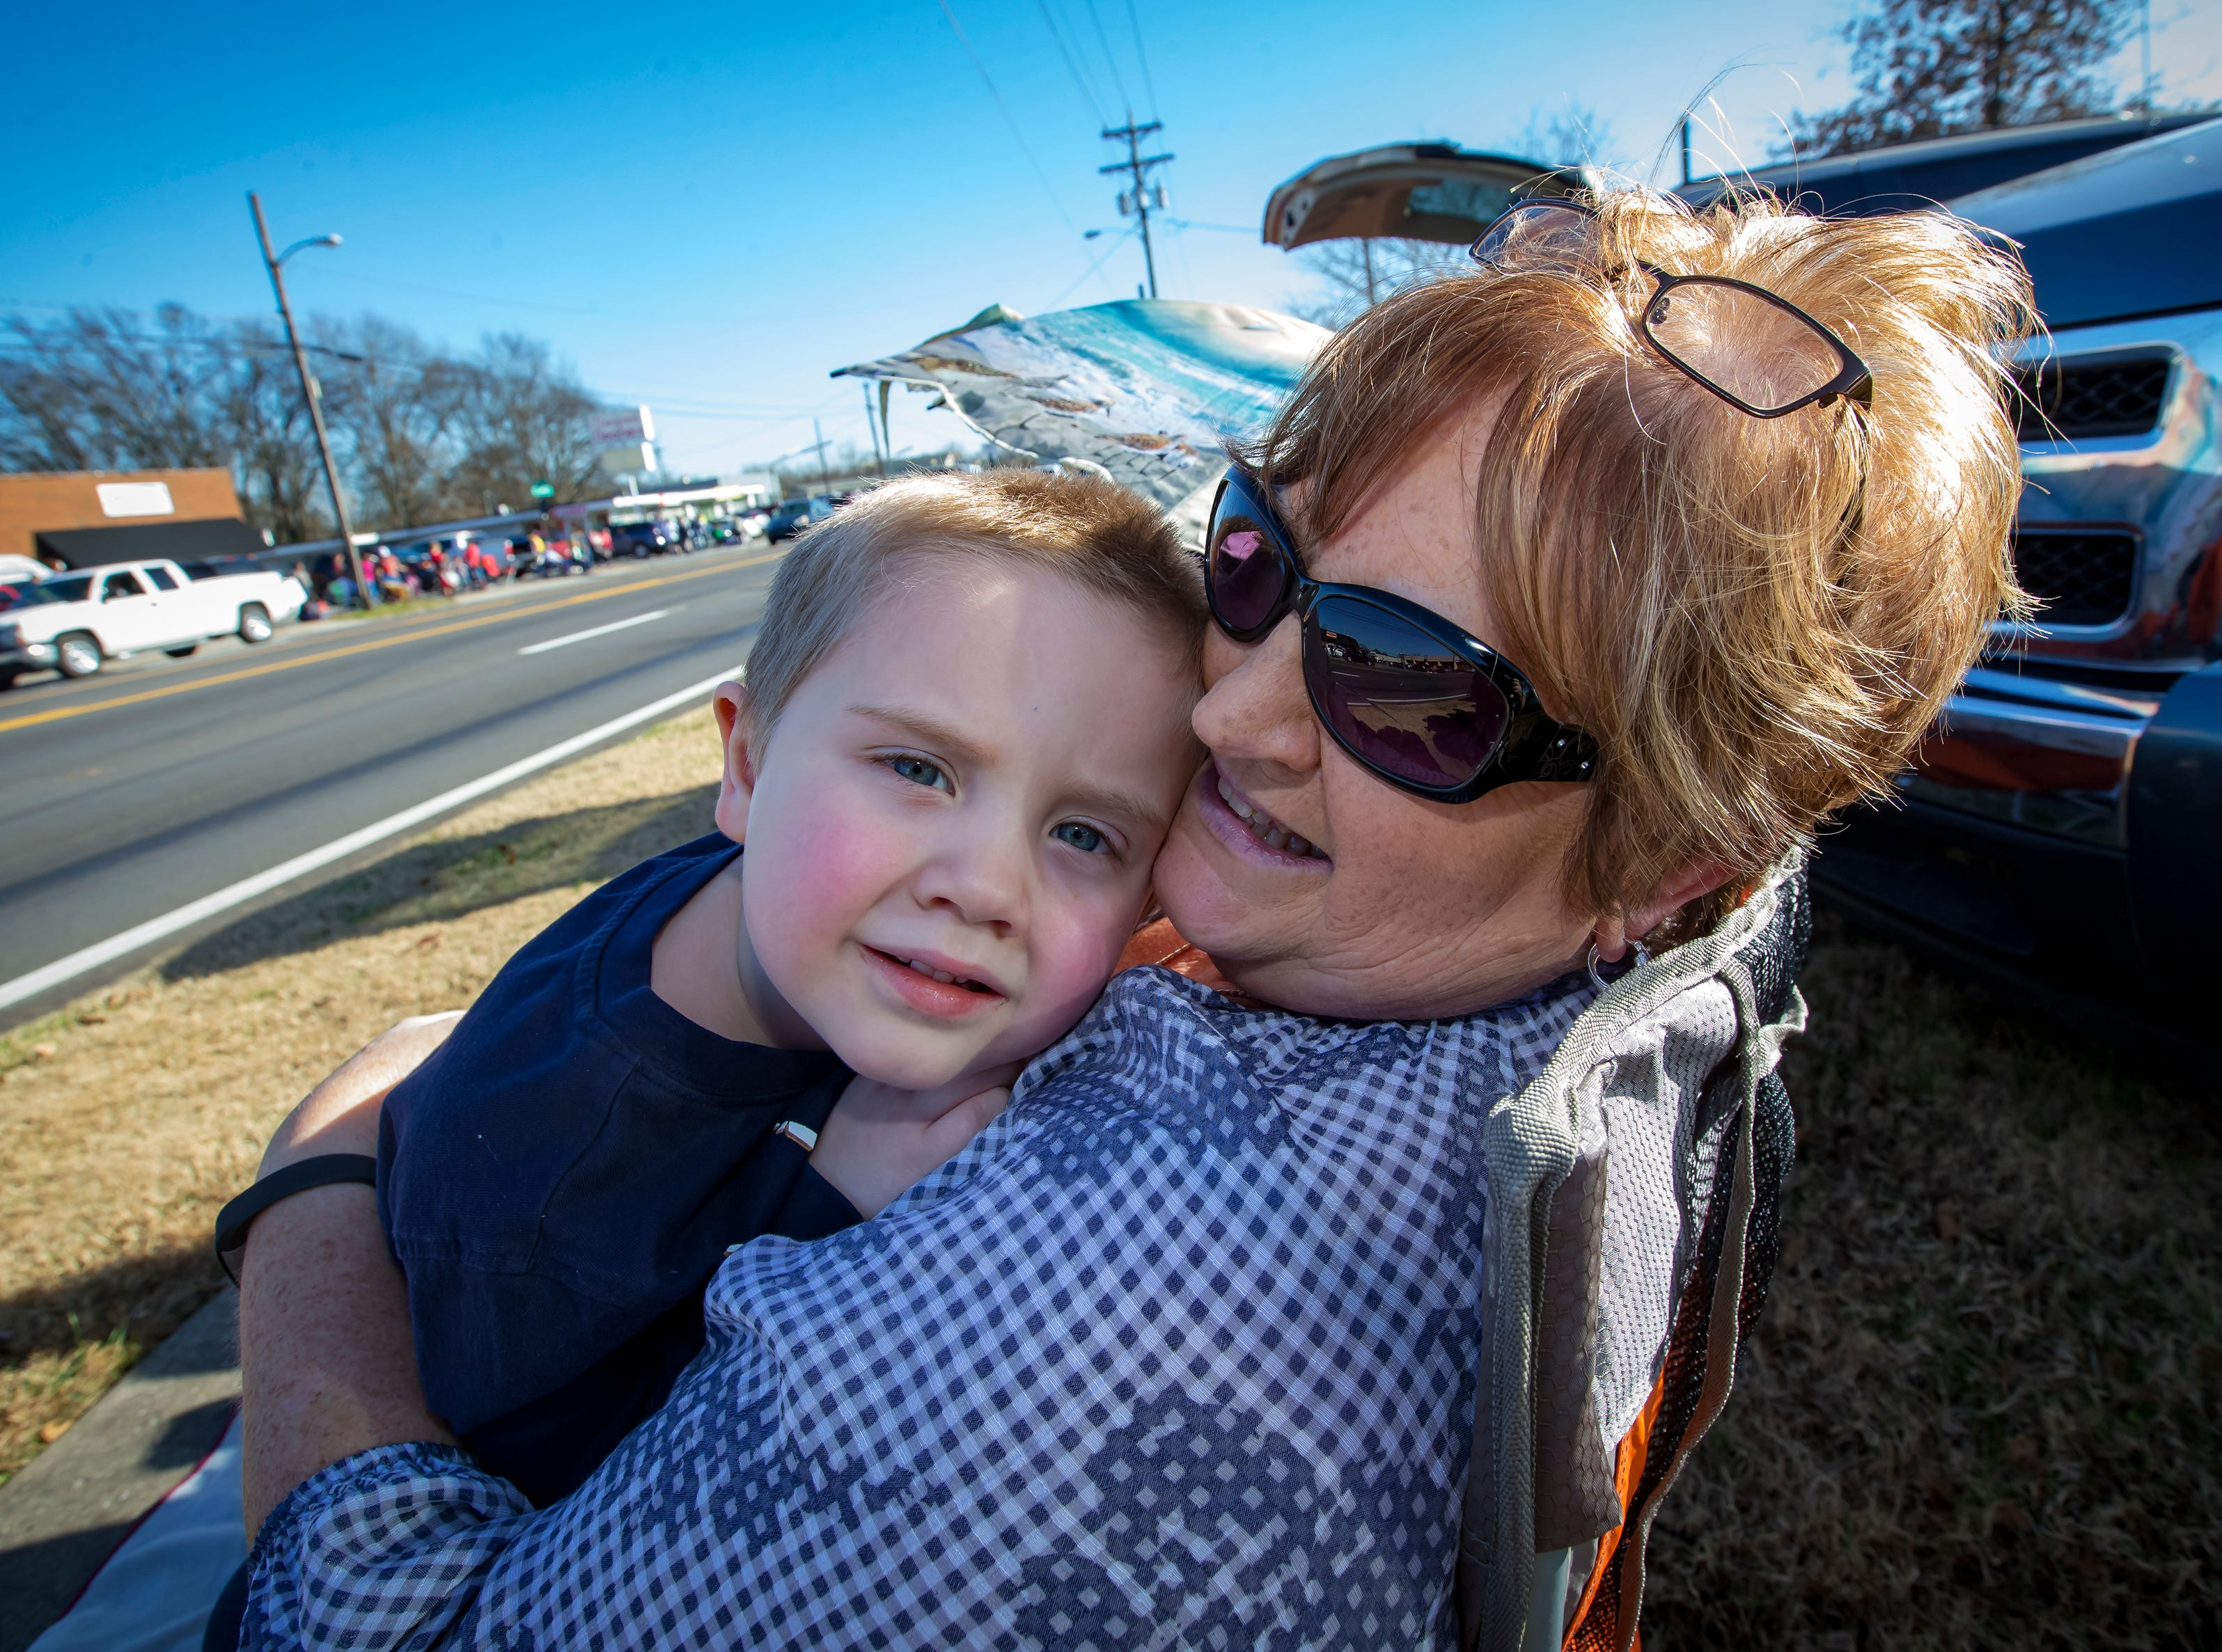 Elijah Norman cuddles with his grandmother Dianne Norman as they wait for the start of the Smyrna Christmas parade.